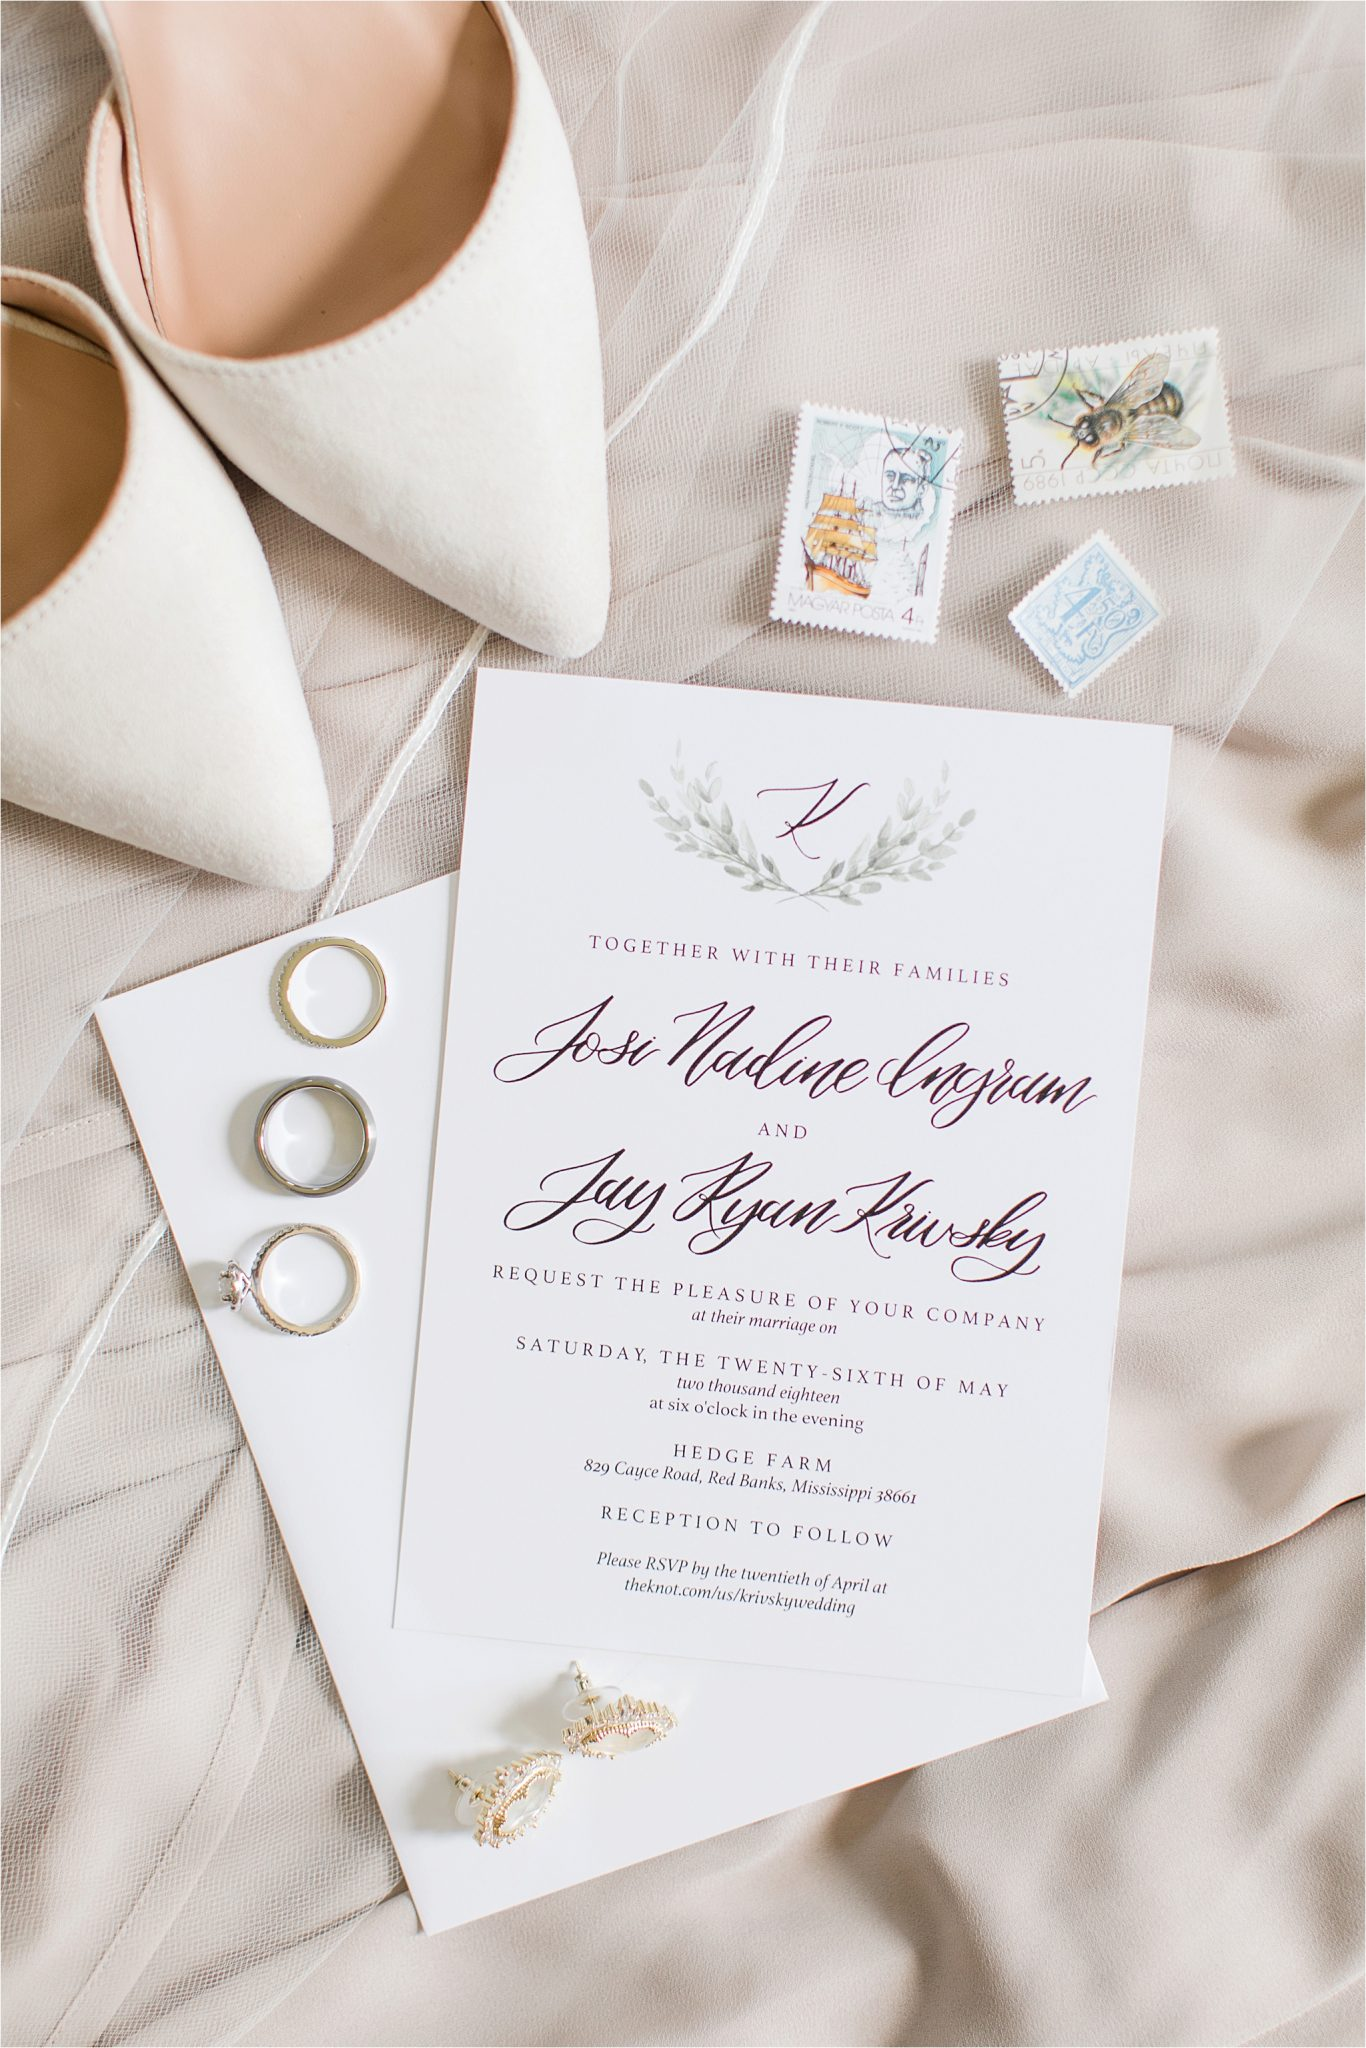 Hedge Farm Wedding | Alabama Wedding Photographer | Barn Wedding | Invitations and Details